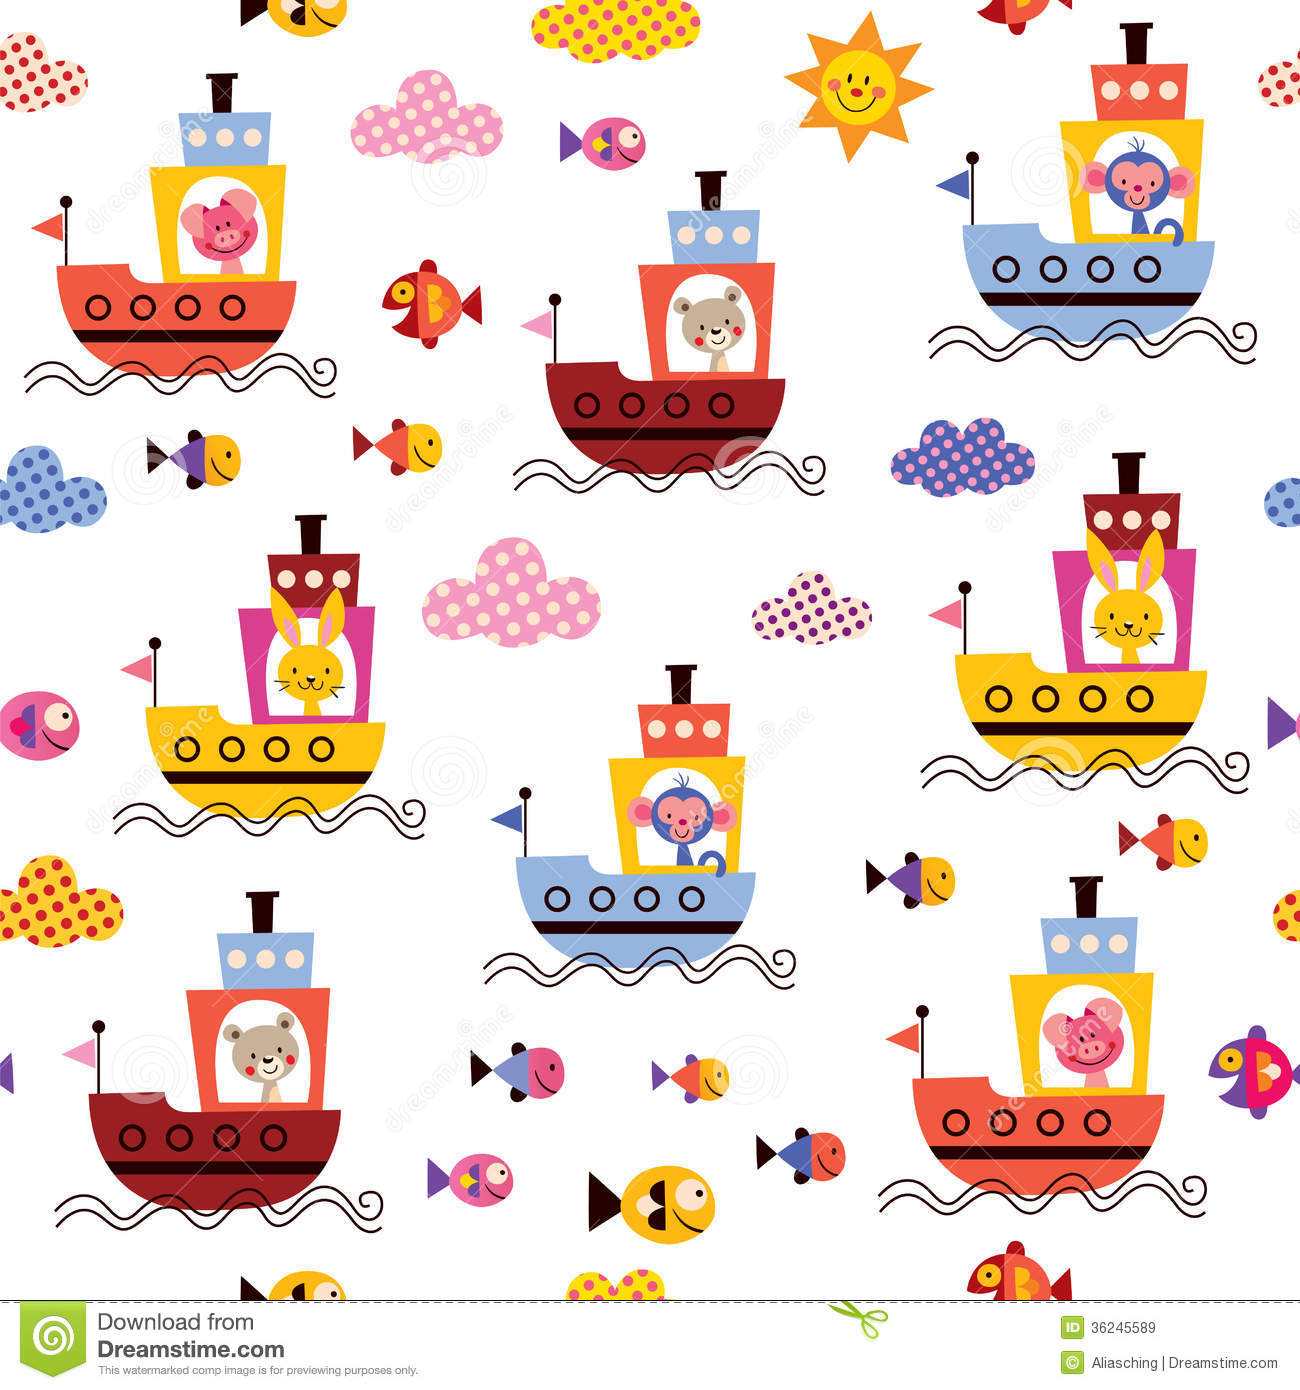 Cute Nail Arts Wallpaper Cute Animals In Boats Kids Sea Pattern Royalty Free Stock